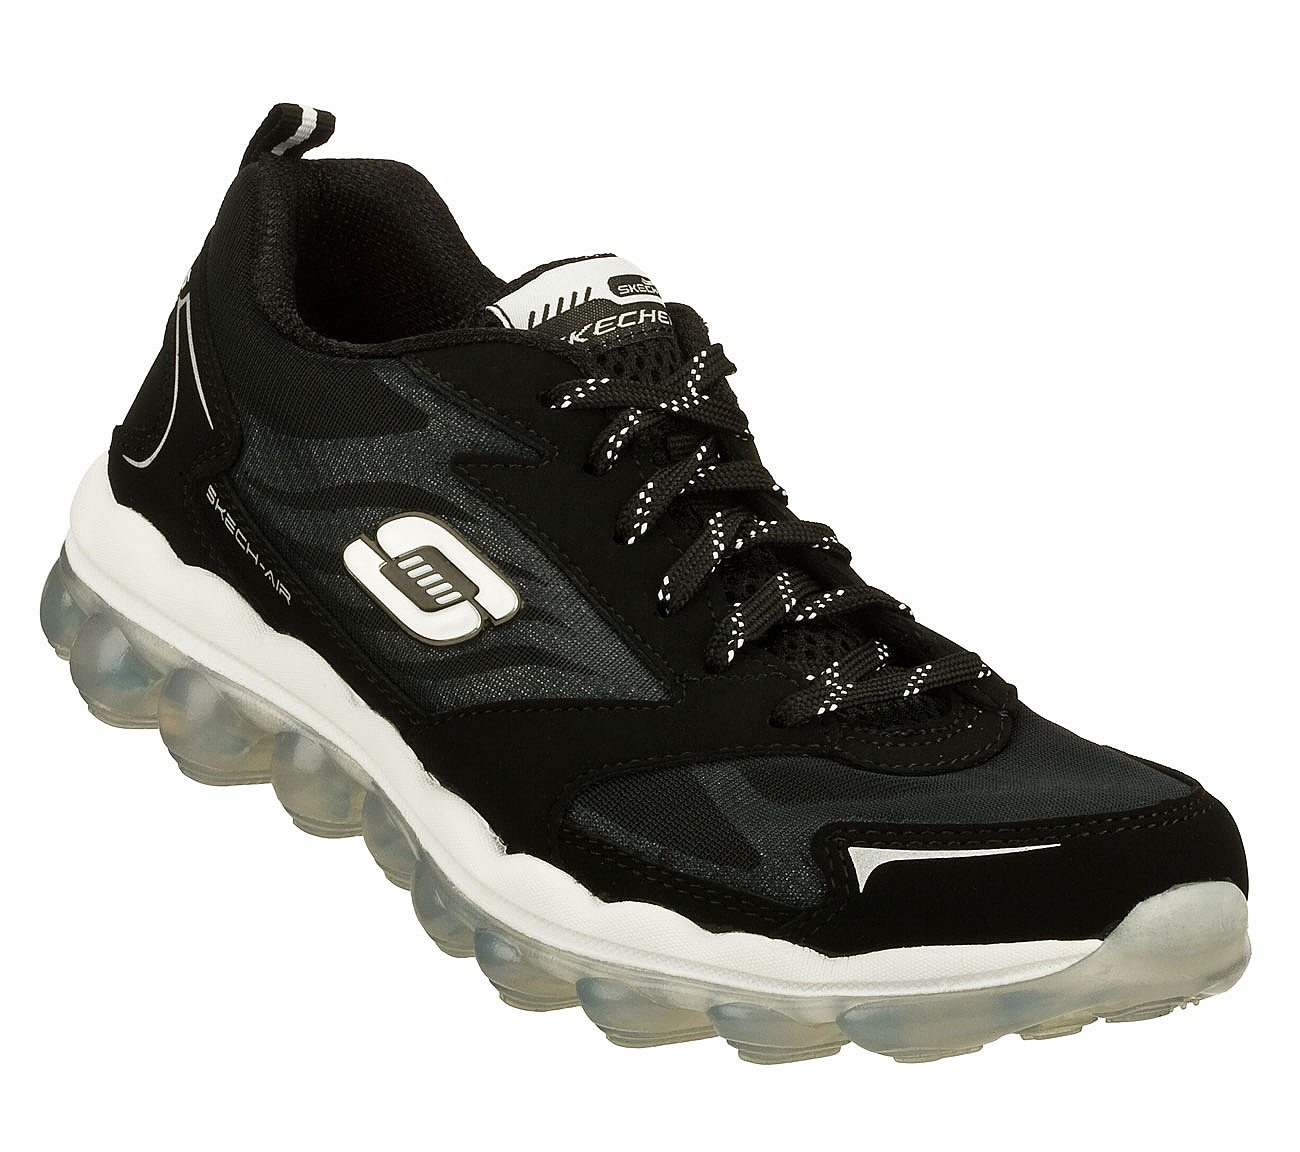 a4c9cdf69ad4f Buy SKECHERS Skech-Air Skech-Air Shoes only $80.00